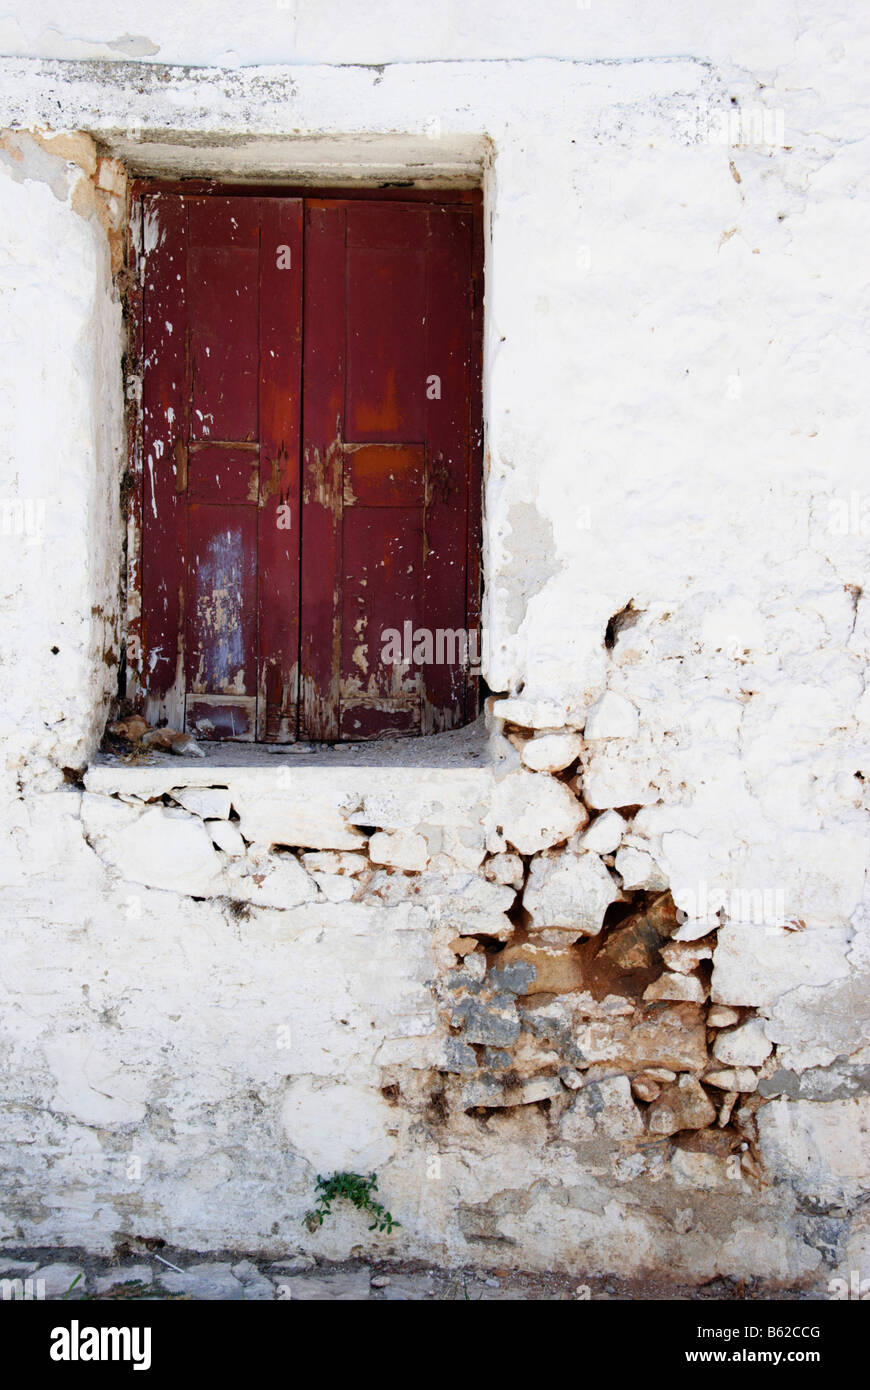 Window of an old house, Lindos, Rhodes Island, Greece, Europe - Stock Image